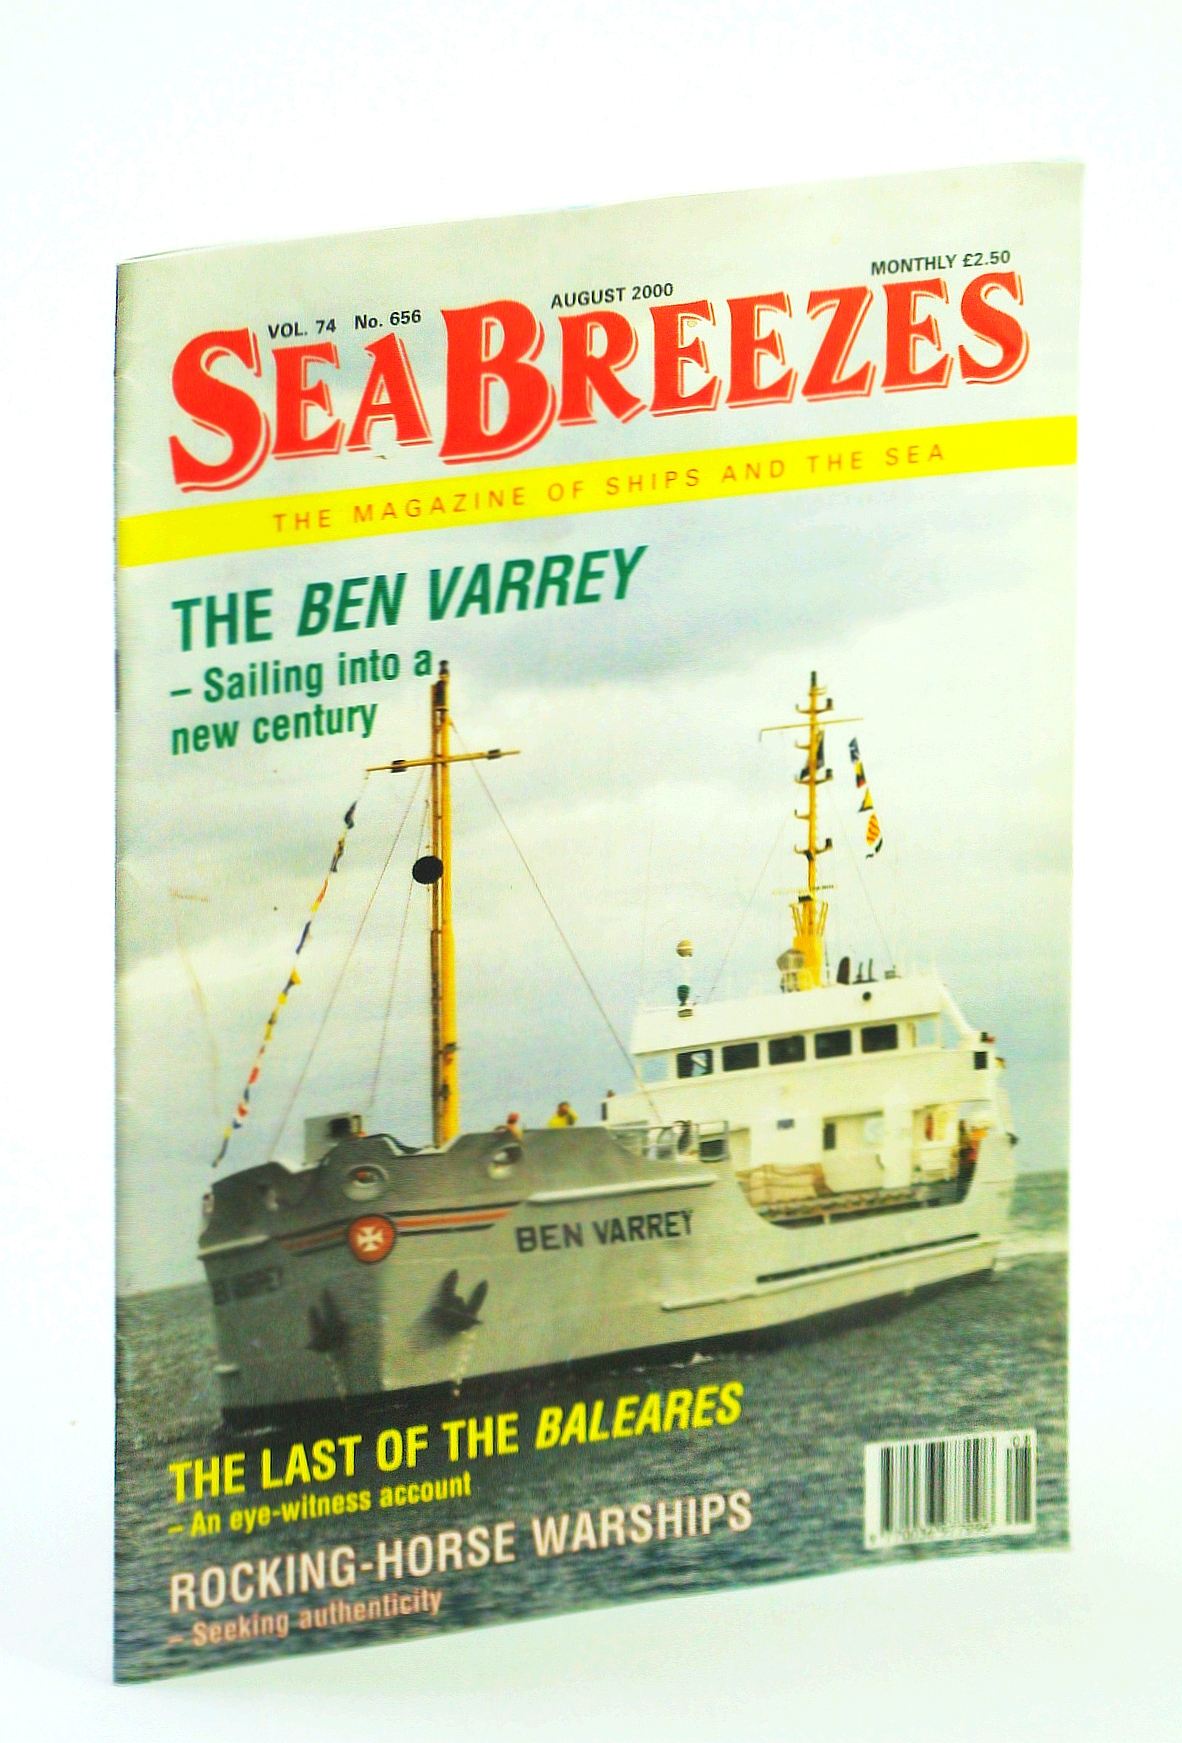 Image for Sea Breezes - The Magazine of Ships and the Sea, August 2000, Vol. 74, No. 656 - Ben Varrey Cover Photo